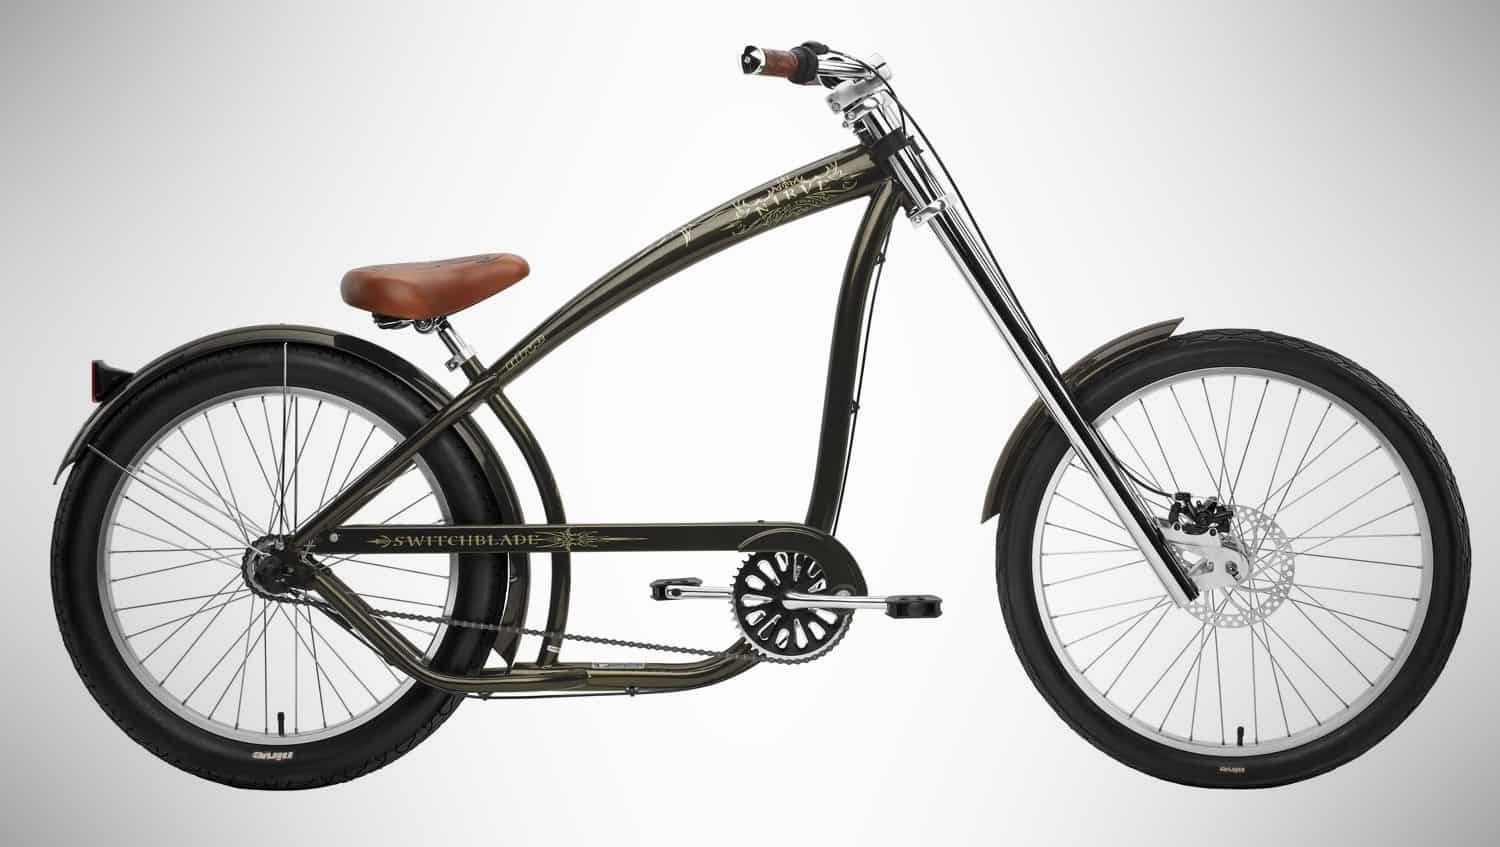 Nirve Switchblade Chopper – cruiser bike